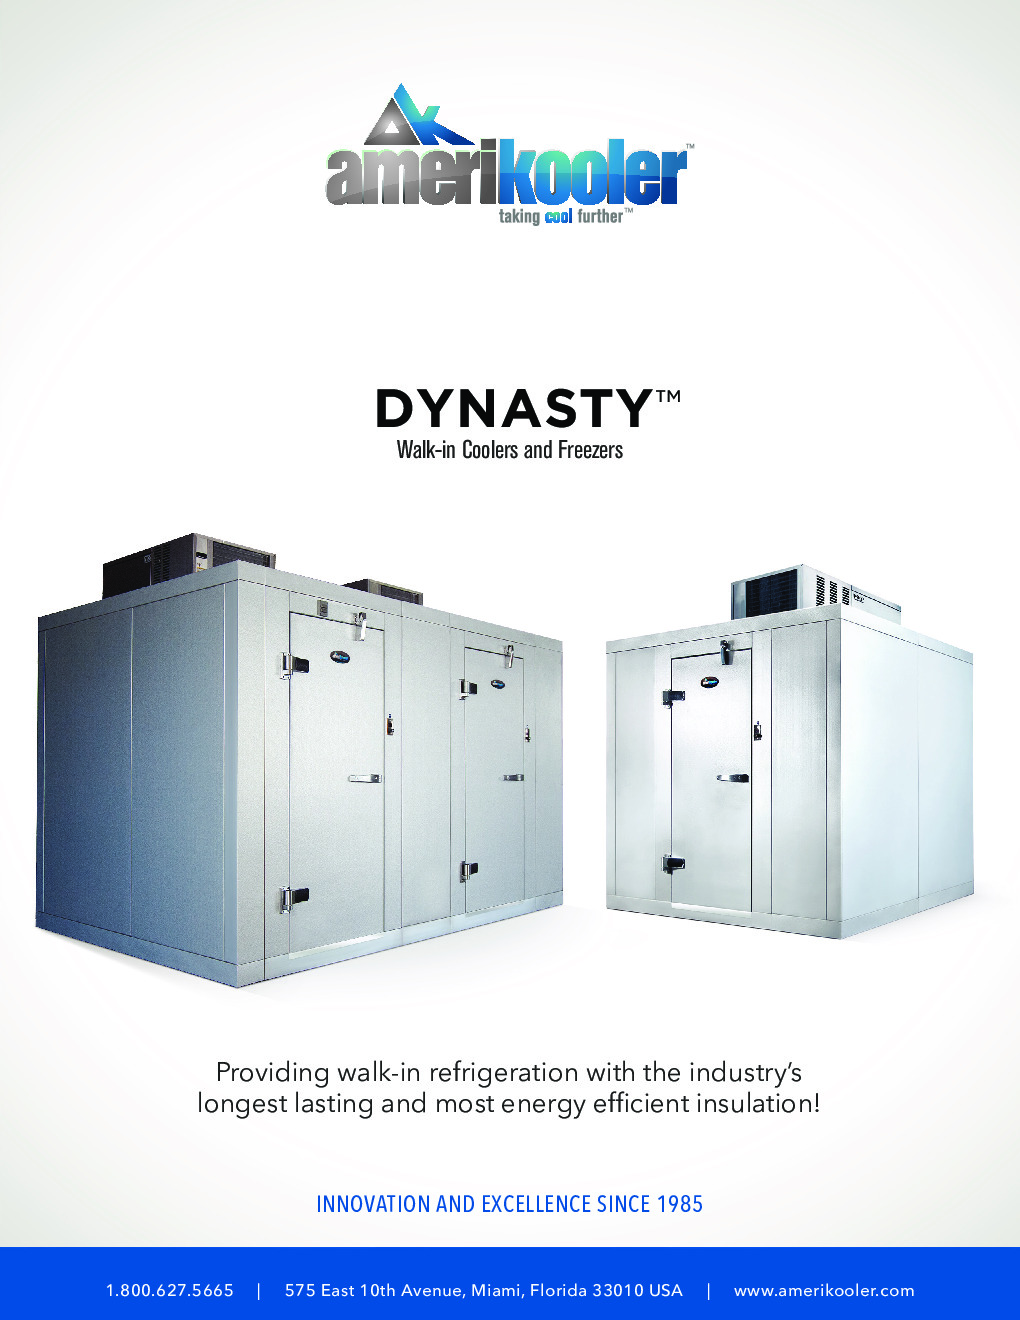 AmeriKooler DW092077N-9/11 Indoor 9' X 20' Walk-In, 11' L Cooler without Floor and 9' L Freezer, Box Only